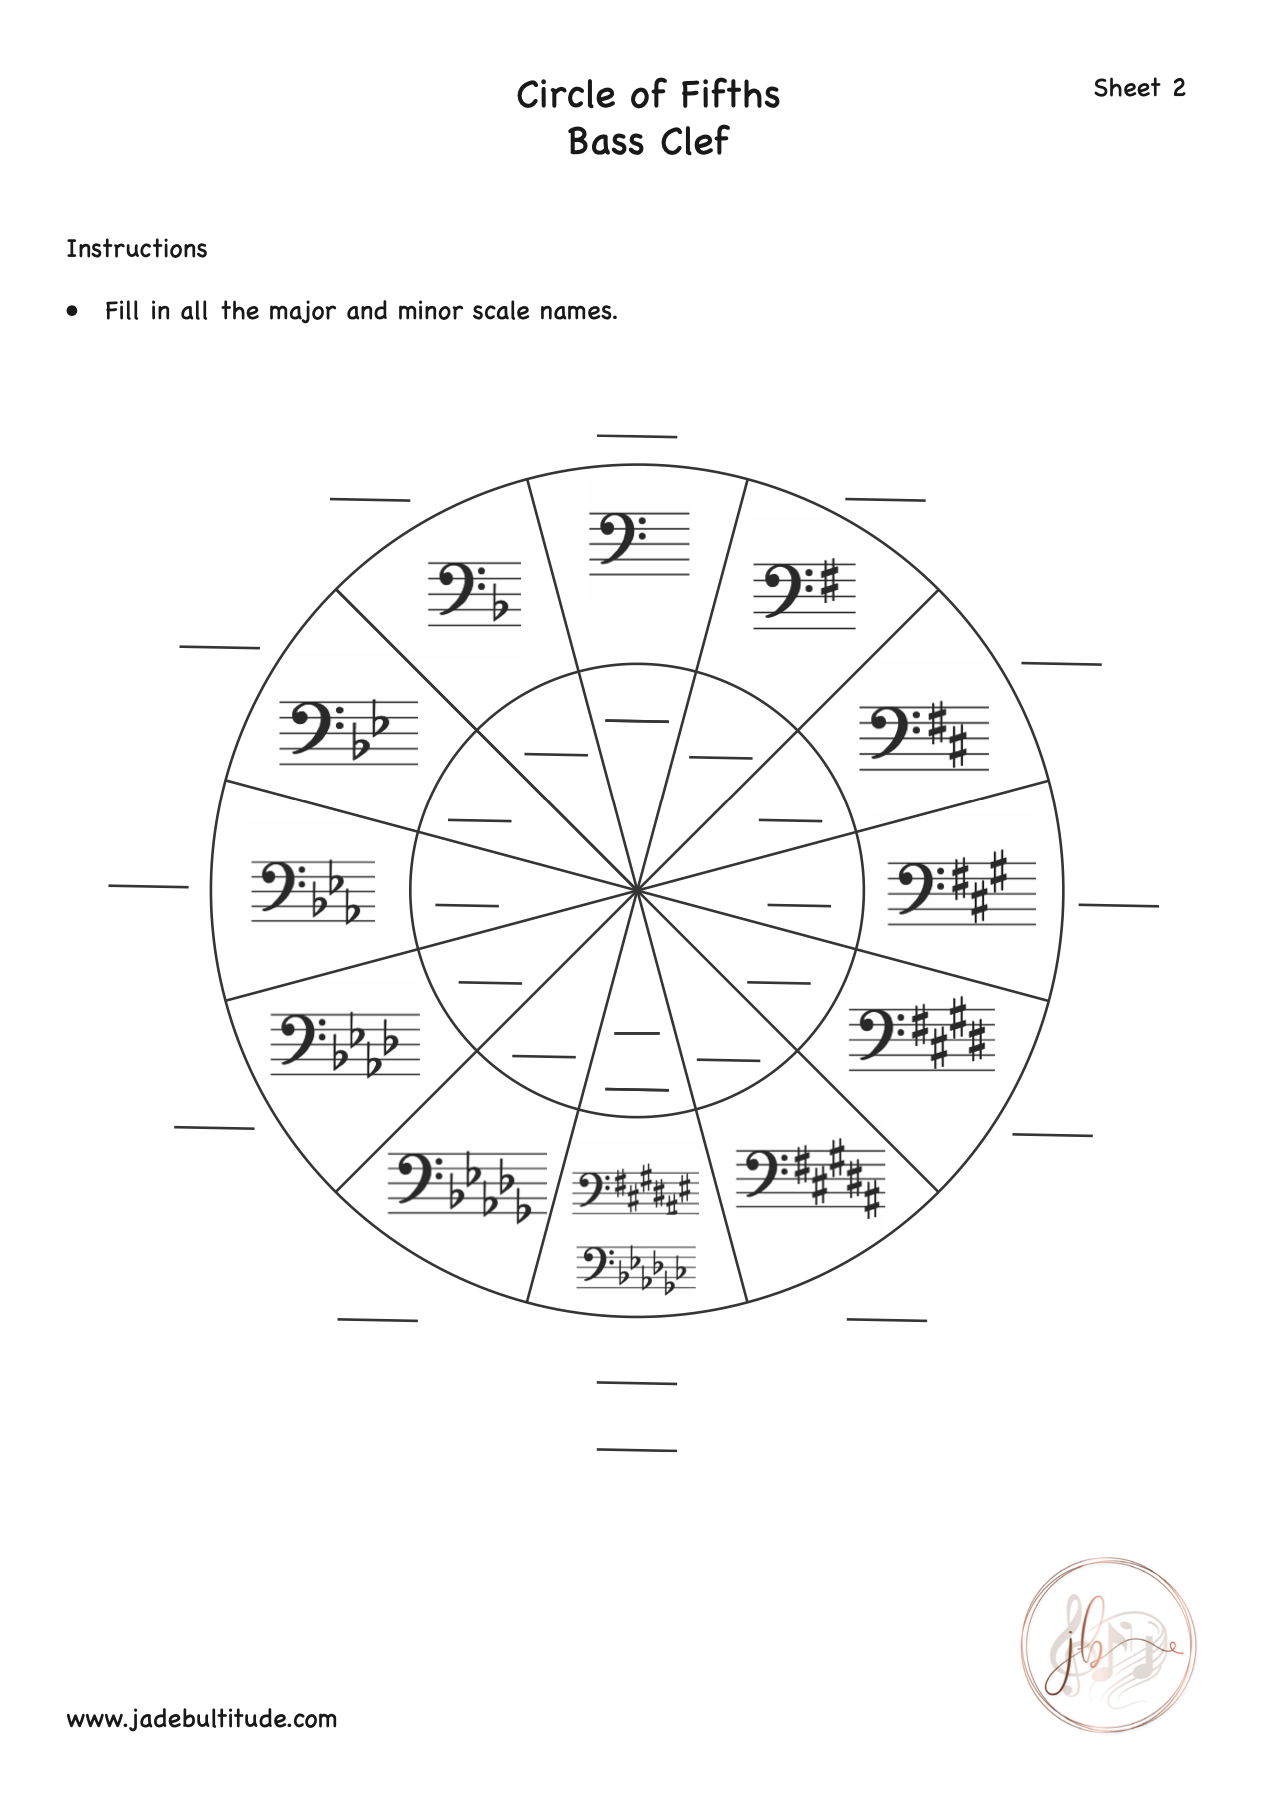 Circle Of Fifths Worksheet Bass Clef Key Signatures